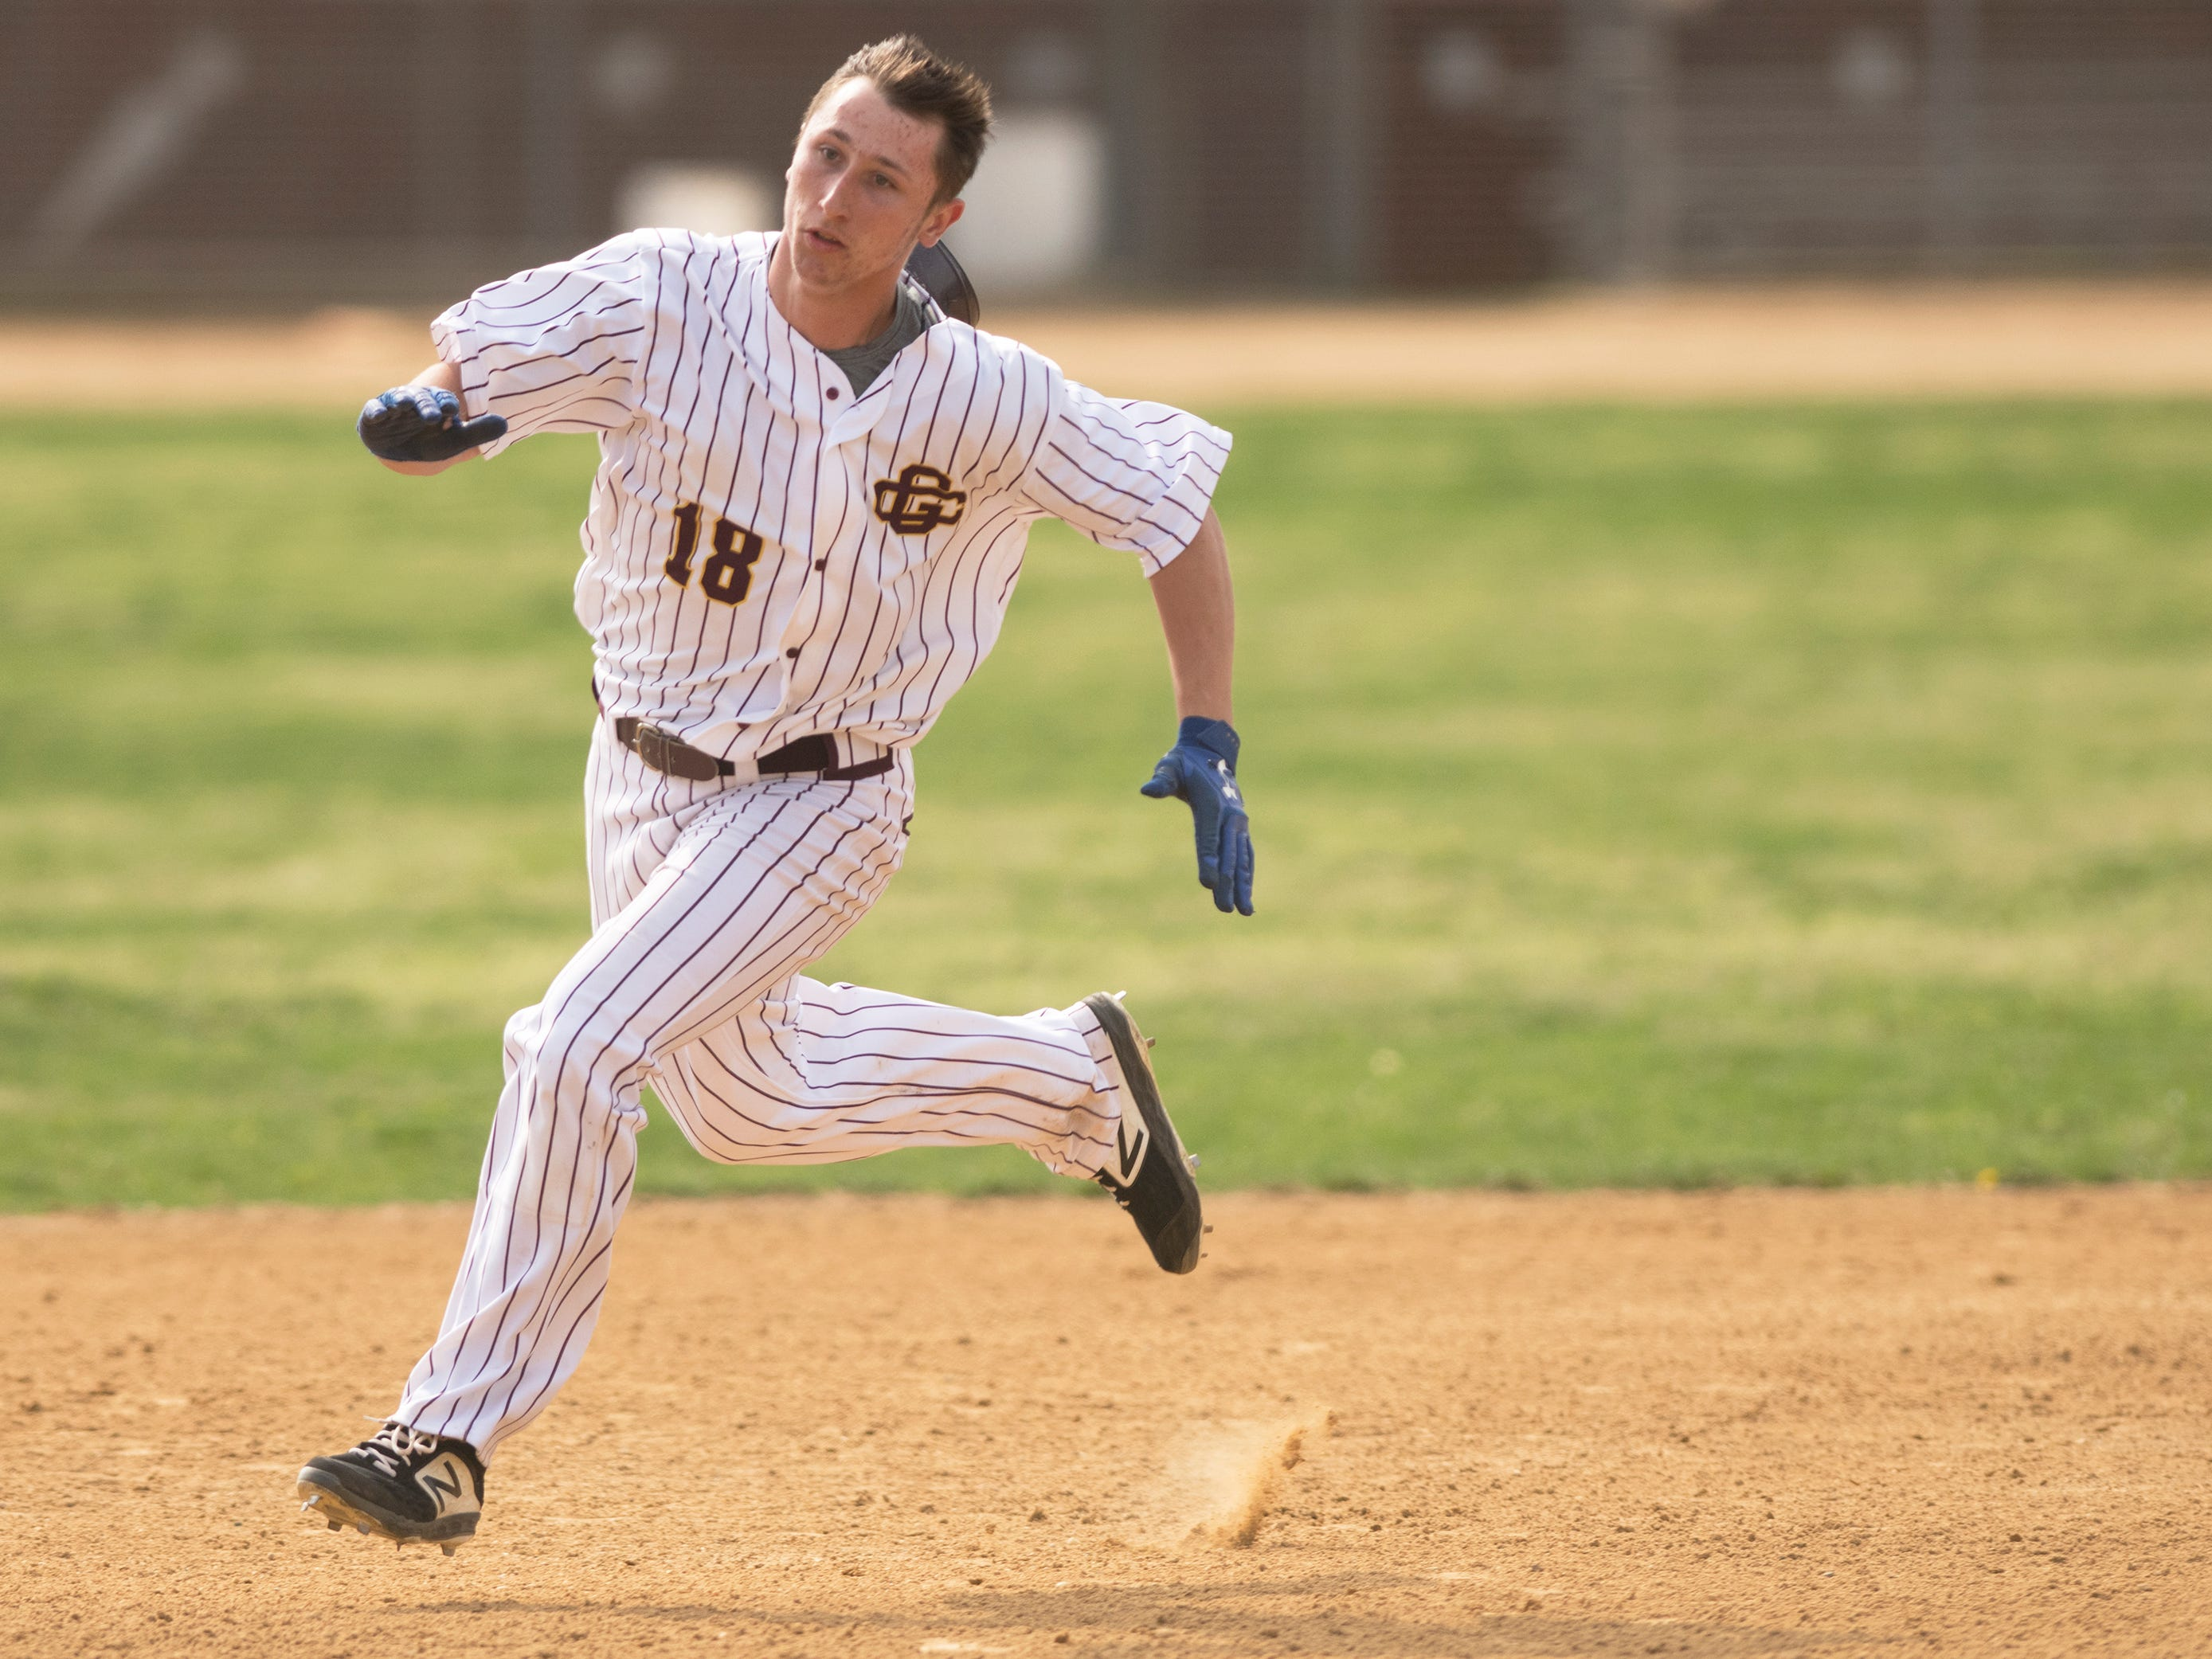 Gloucester Catholic's Jake McNellis runs towards third base after hitting a triple during the first inning of Gloucester Catholic's 13- 0 win over Pennsville at Joe Barth Field in Brooklawn on Wednesday, April 17, 2019.